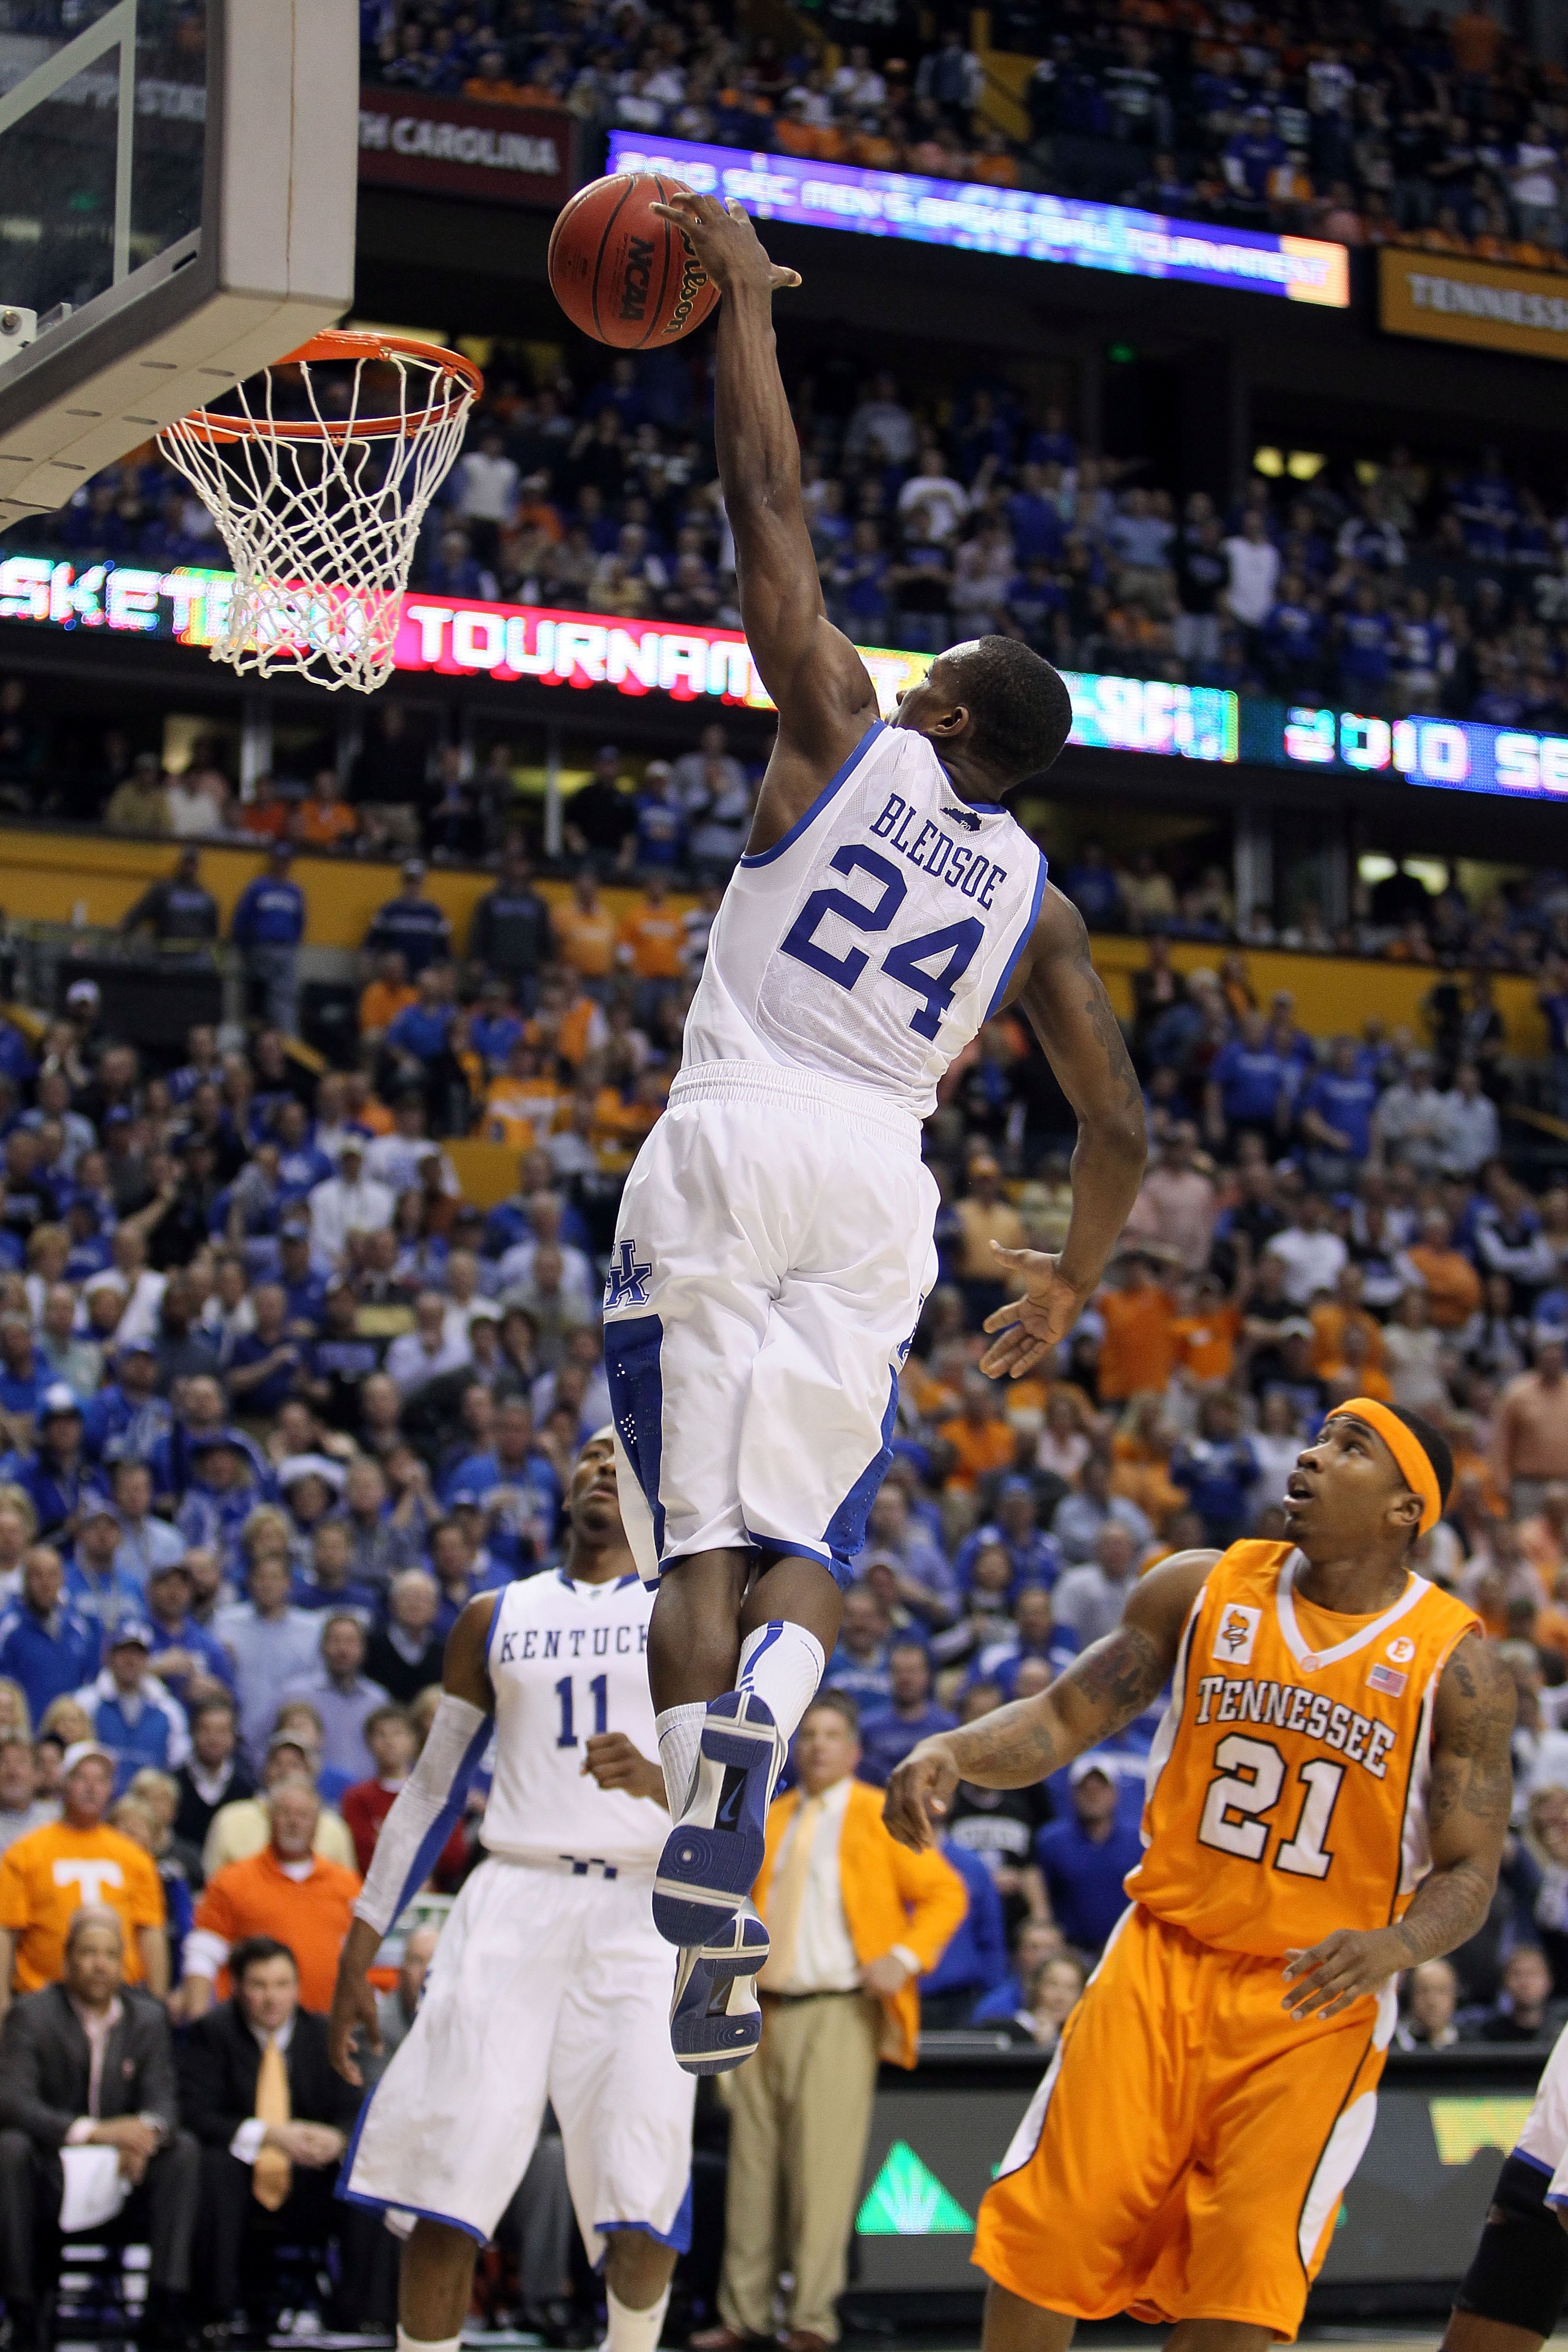 NASHVILLE, TN - MARCH 13:  Eric Bledsoe #24 of the Kentucky Wildcats dunks against the Tennessee Volunteers during the semirfinals of the SEC Men's Basketball Tournament at the Bridgestone Arena on March 13, 2010 in Nashville, Tennessee. Kentucky won 74-4